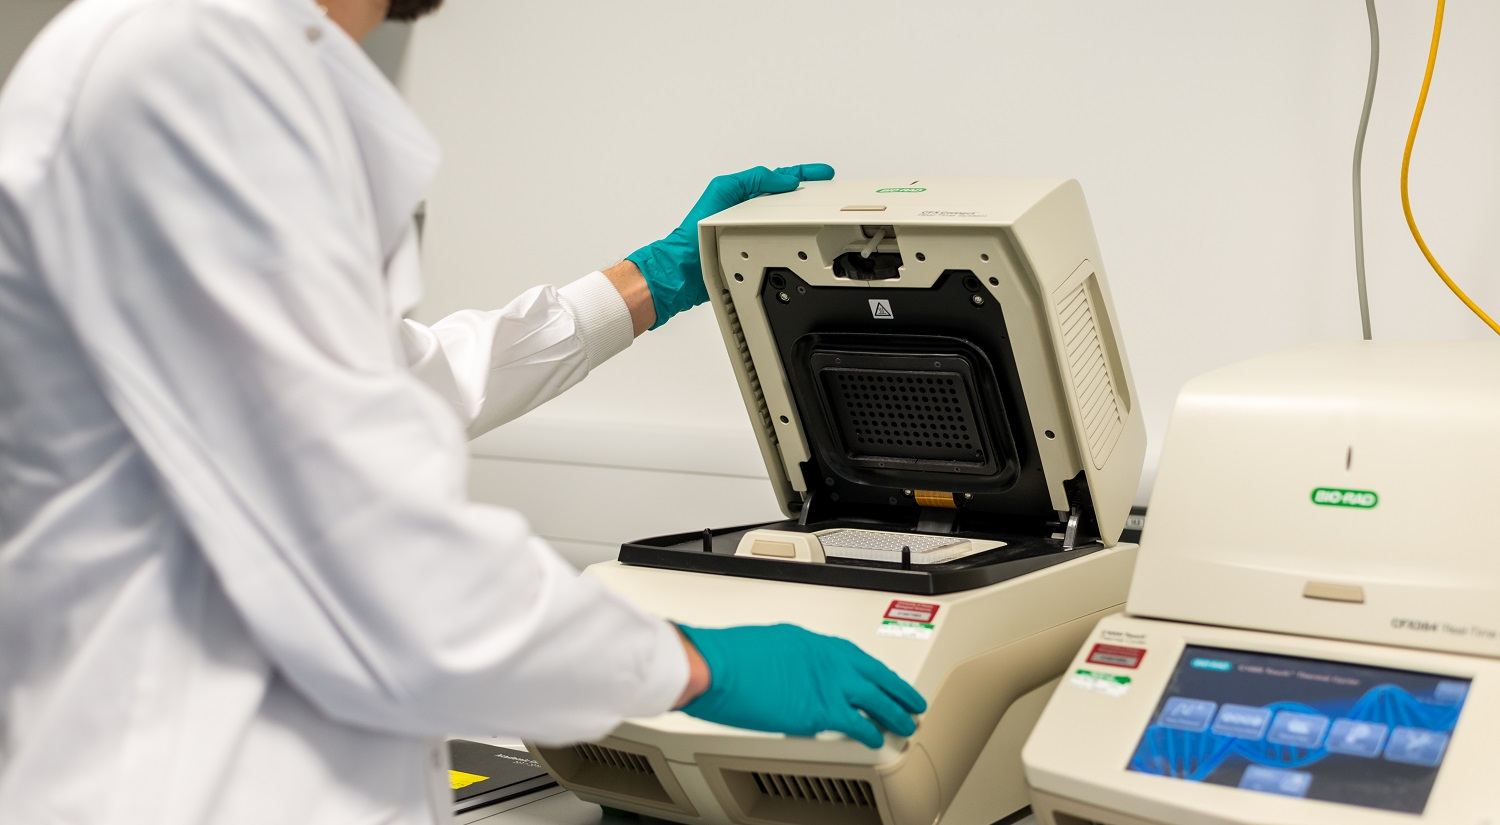 A person in a white lab coat and green gloves, lifting the lid on a piece of life sciences laboratory equipment.